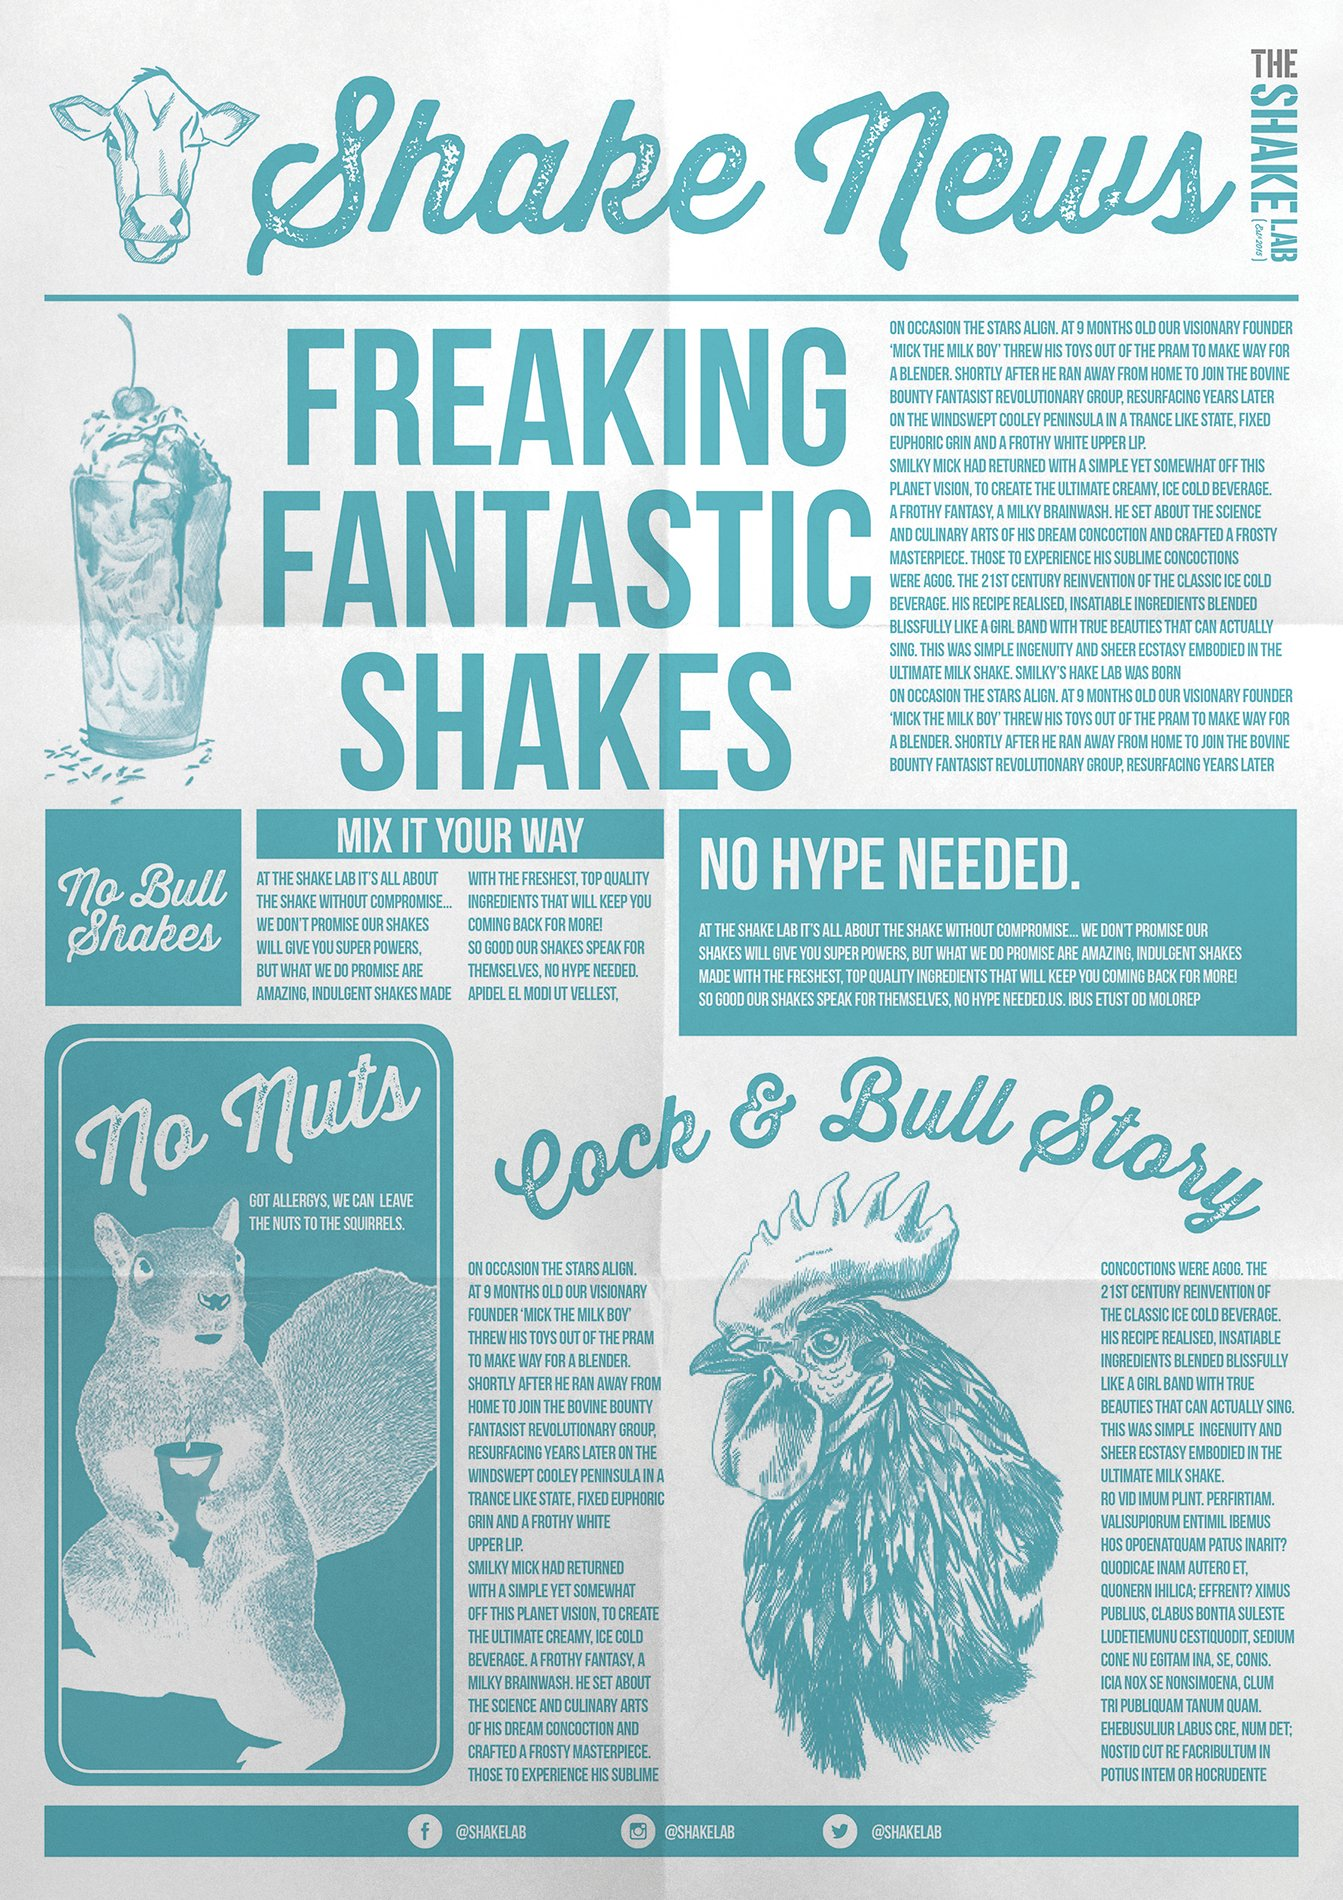 The Shake Lab branded newspaper style graphics with illustrations